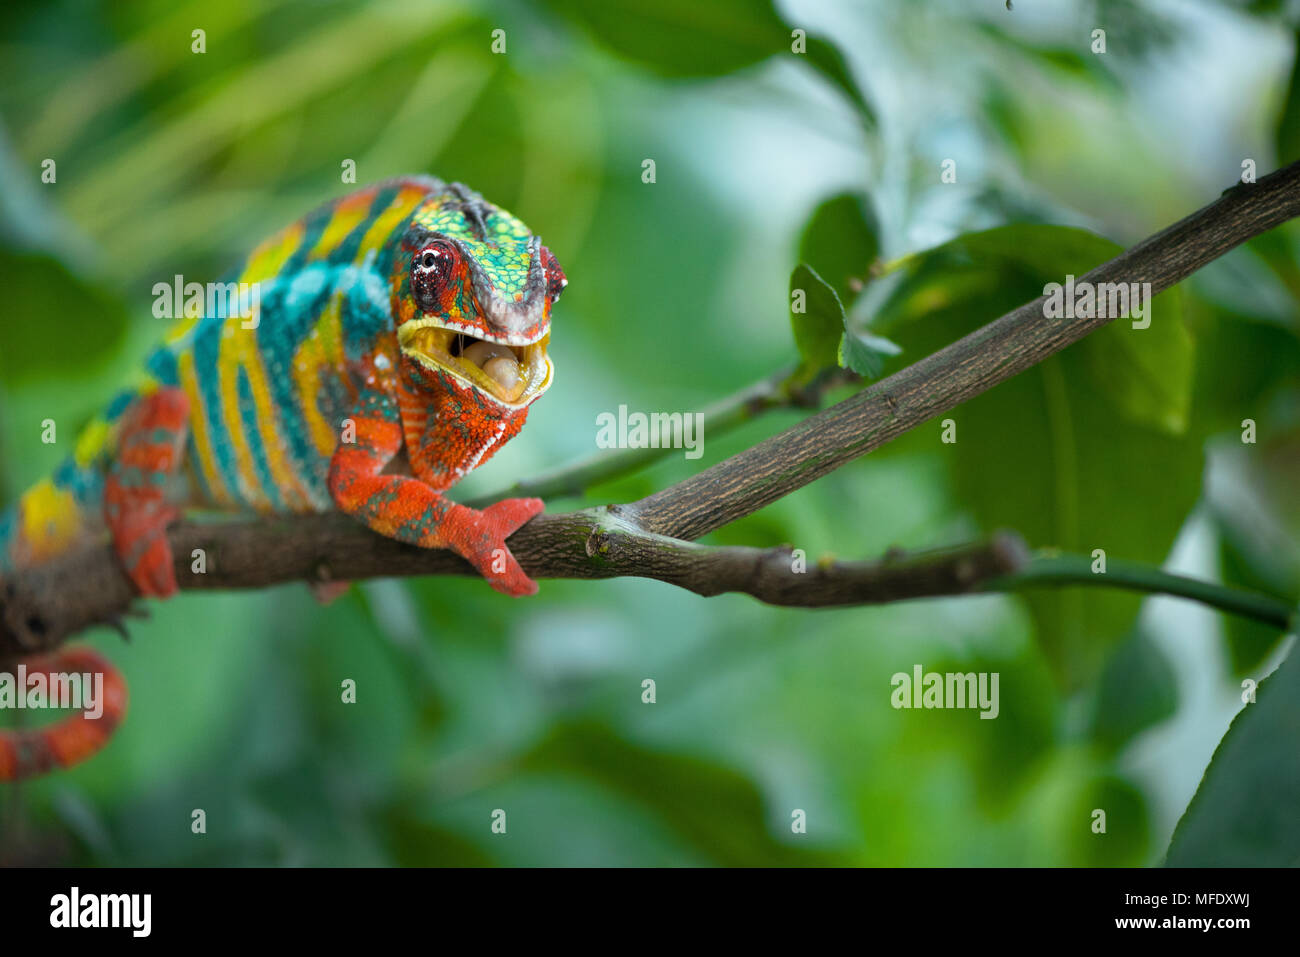 Panther chameleon with bright colors on a branch / colorful chameleon / Furcifer pardalis / Chameleon open mounth  / Madagascar wildlife - Stock Image